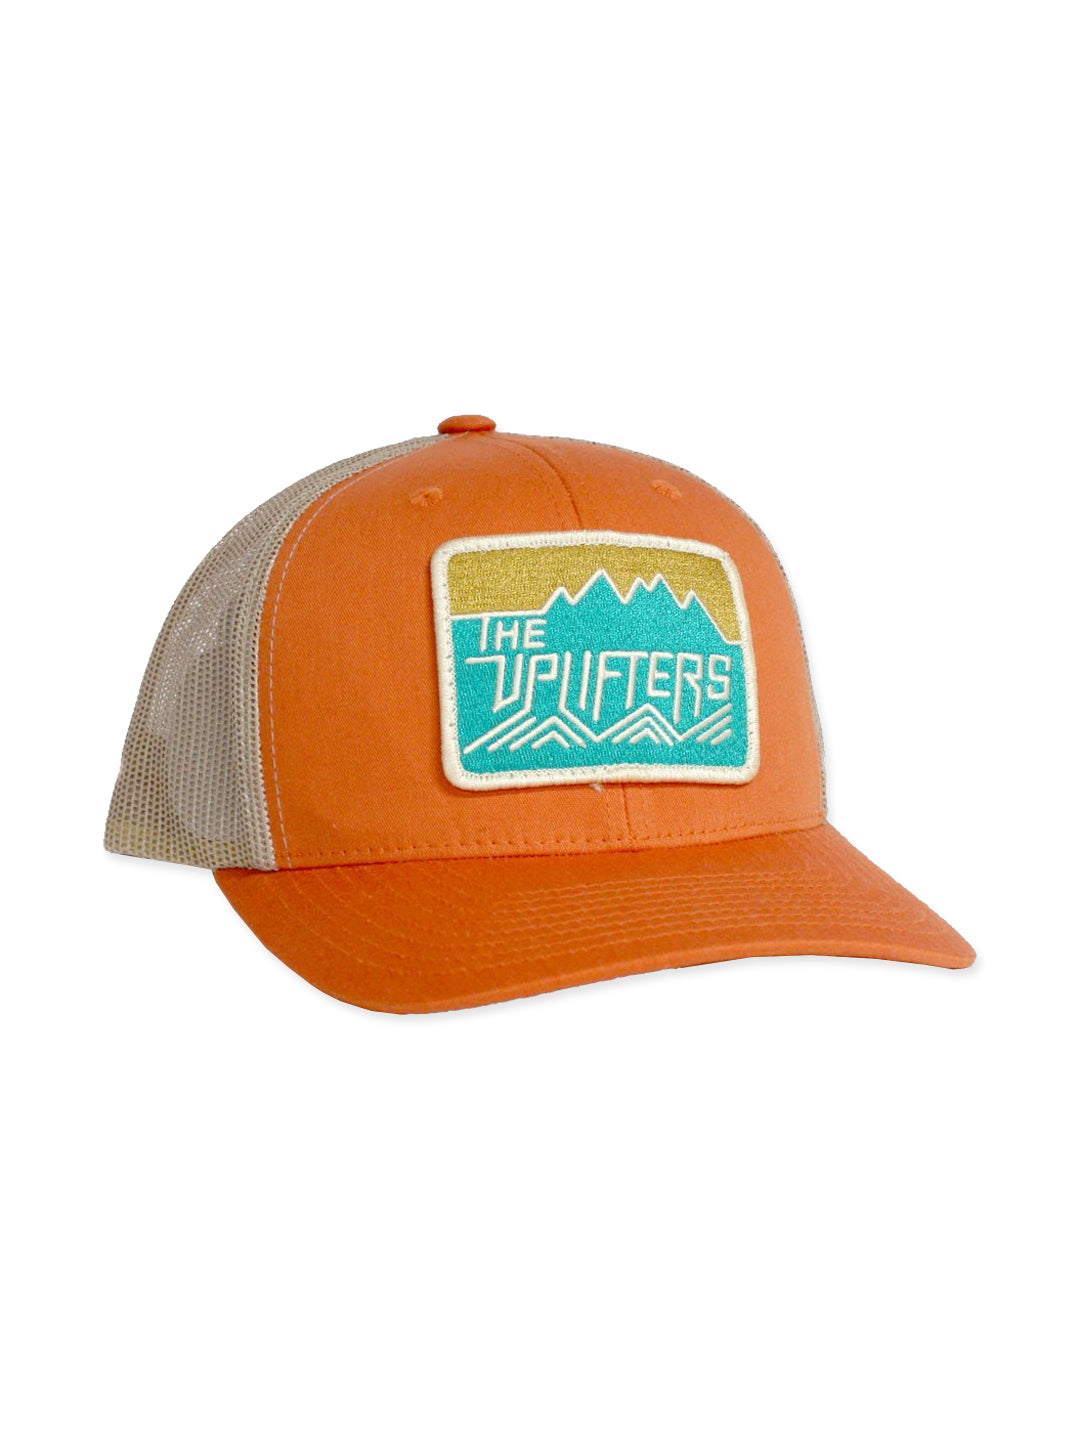 Classic Uplifters Patch Hat in Orange